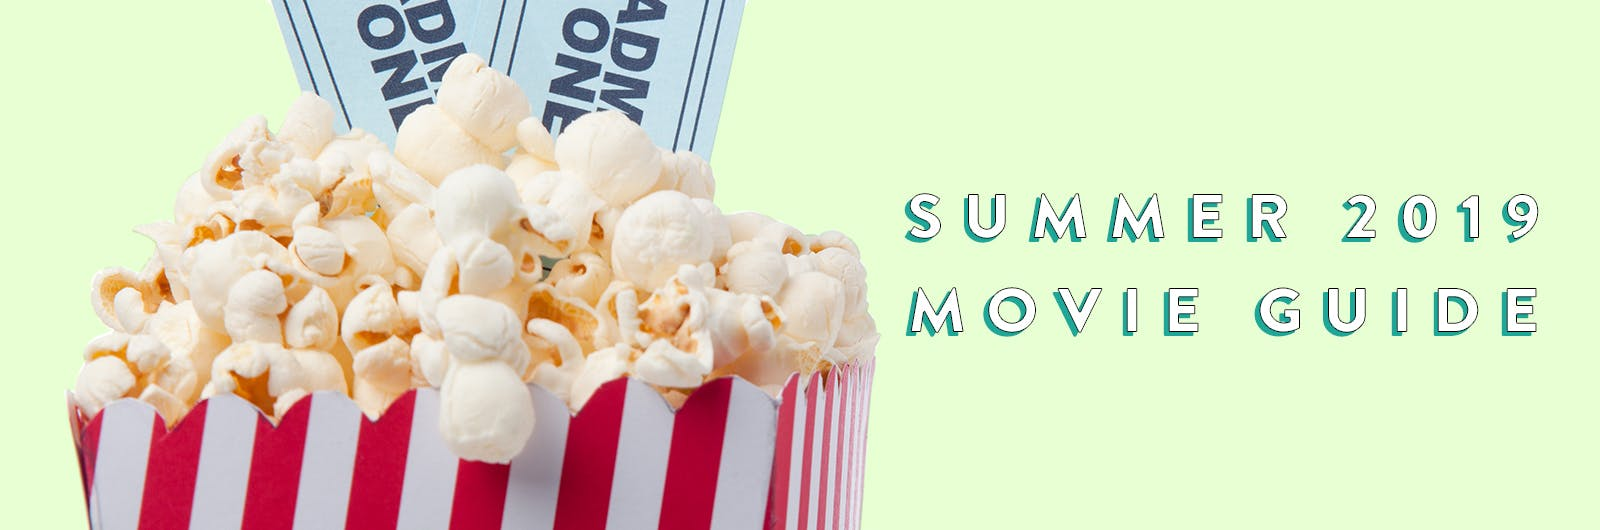 Summer 2019 Movie Guide - PureWow